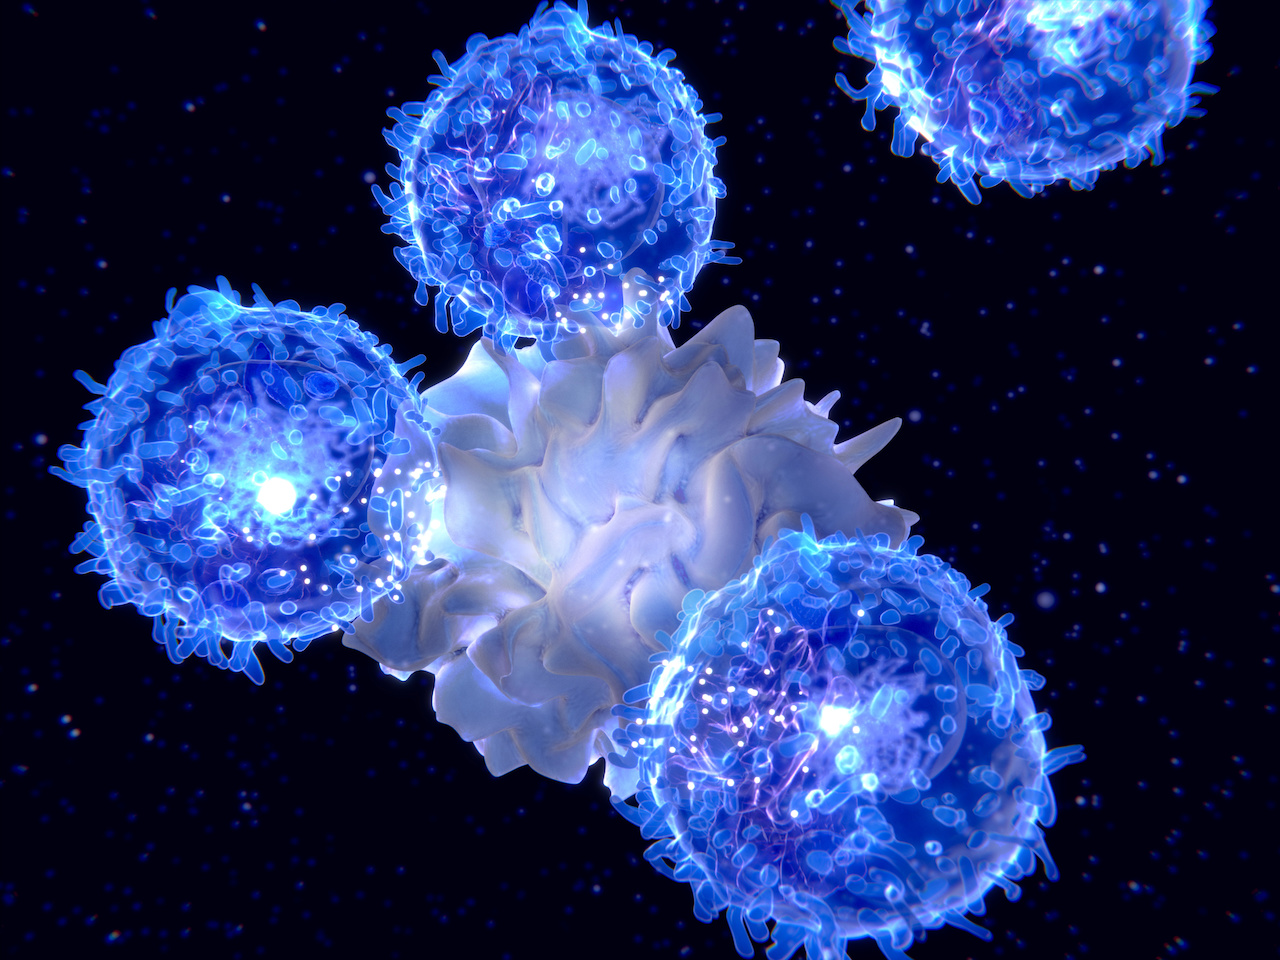 Ruxolitinib Therapy Benefits Patients with Chronic Neutrophilic Leukemia